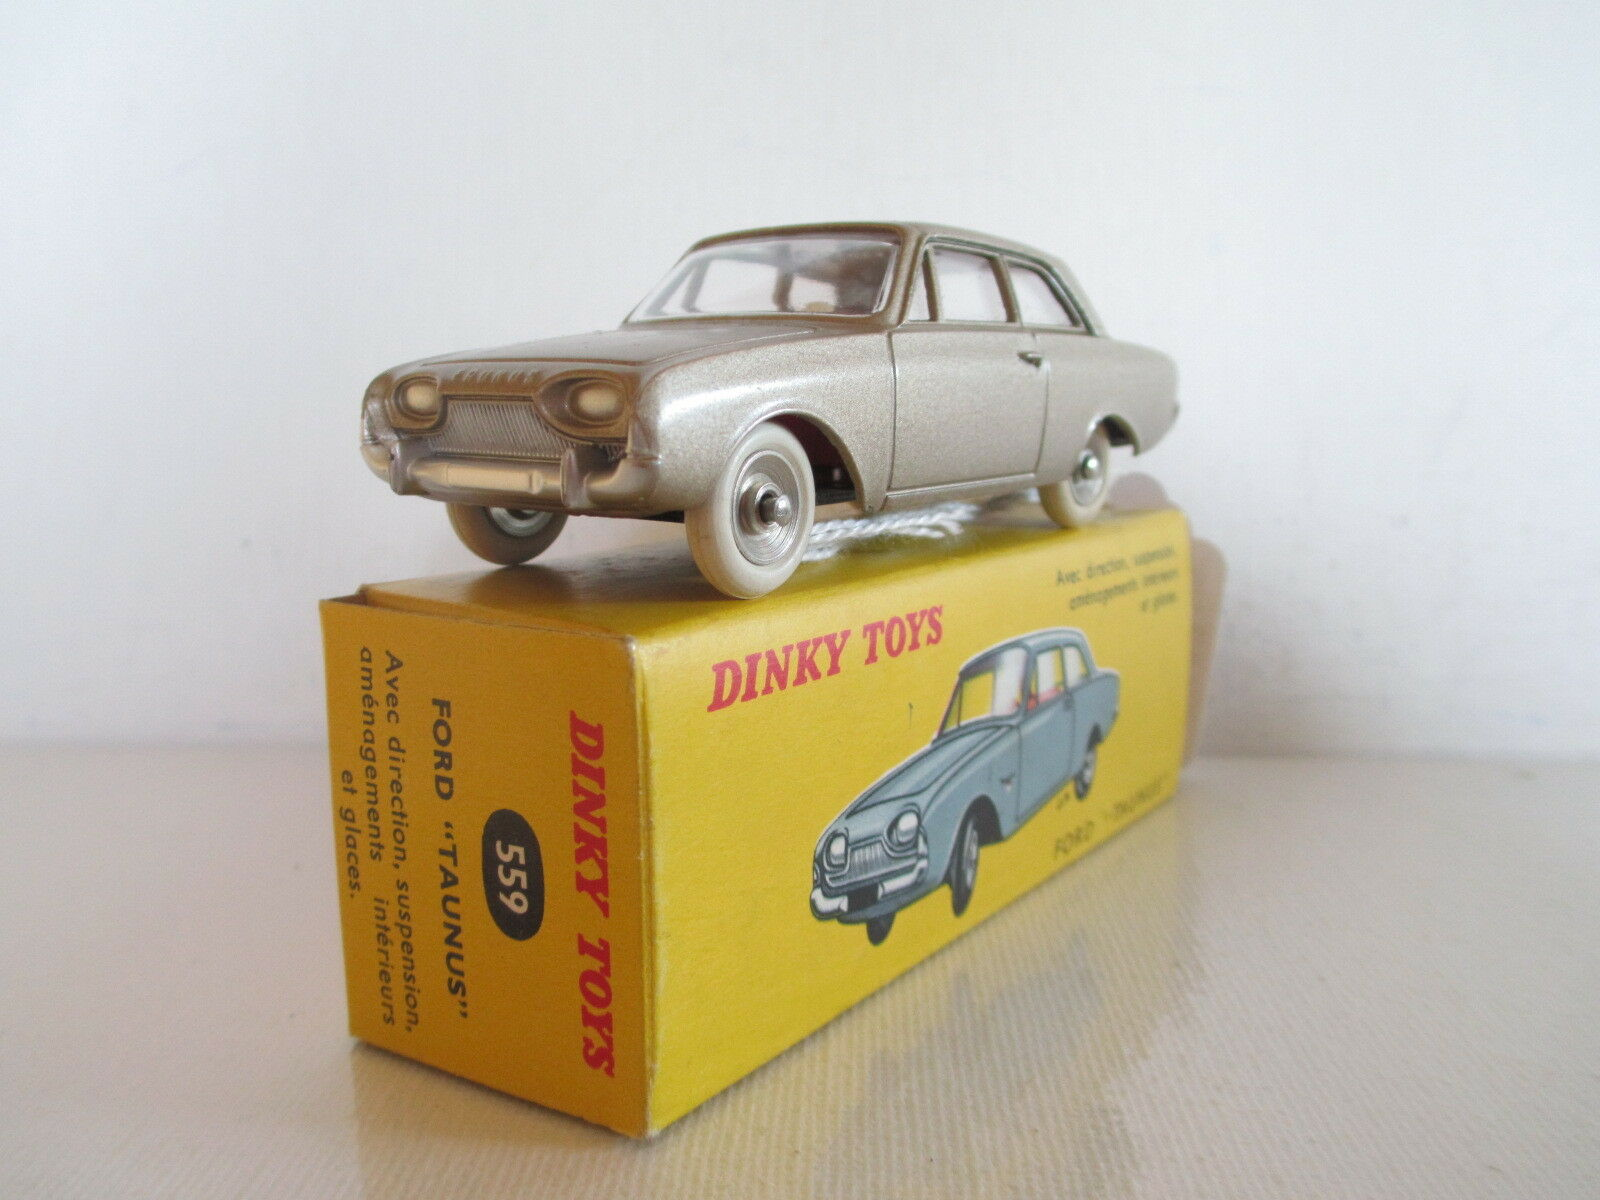 FRENCH DINKY TOYS 559 FORD TAUNUS 17M MIB 9 EN BOITE VERY NICE L@@K